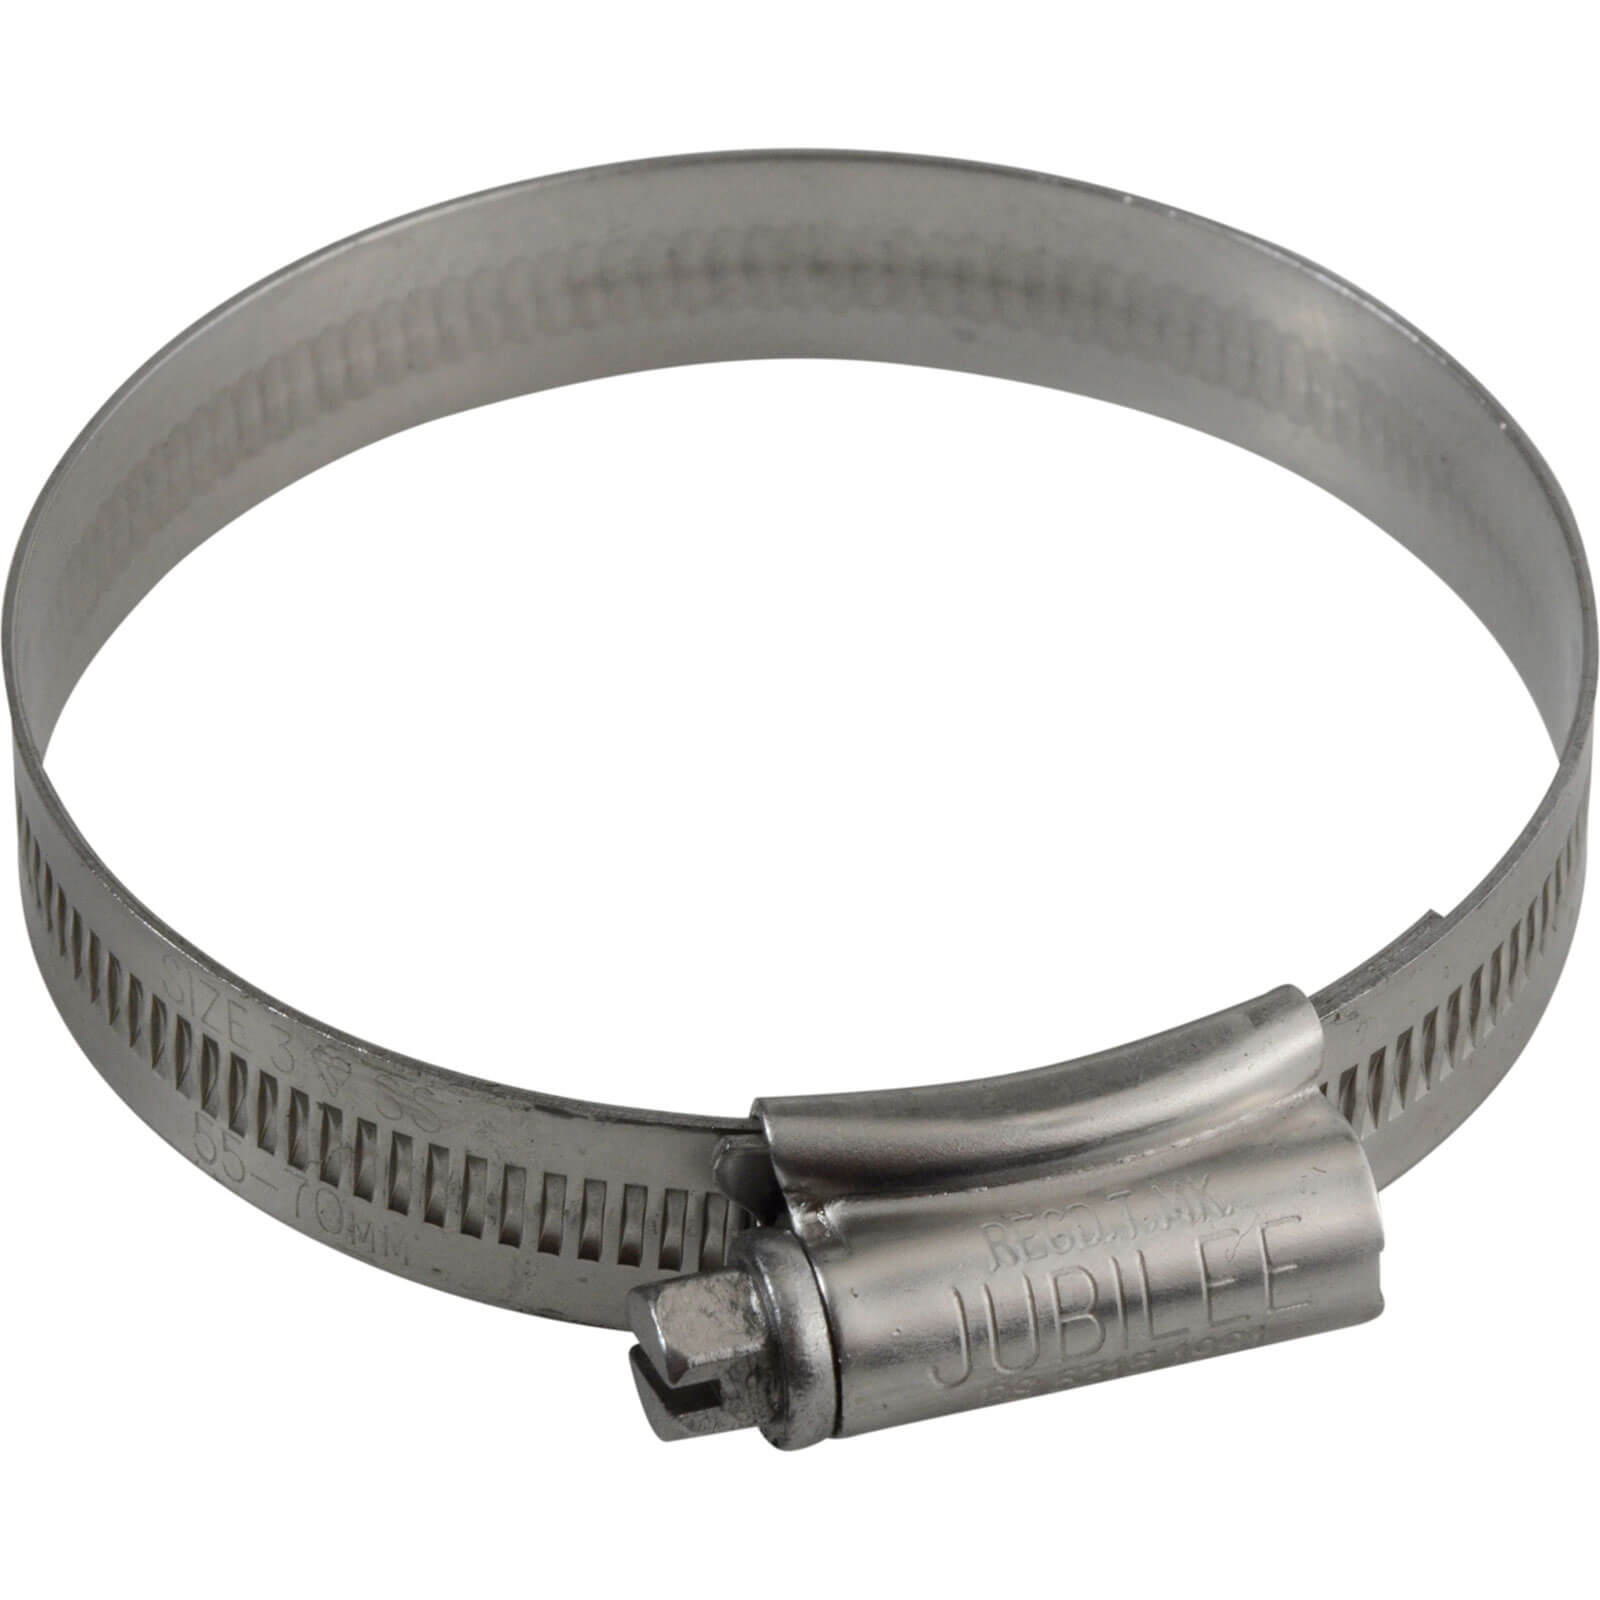 Image of Jubilee Stainless Steel Hose Clip 55mm - 70mm Pack of 1